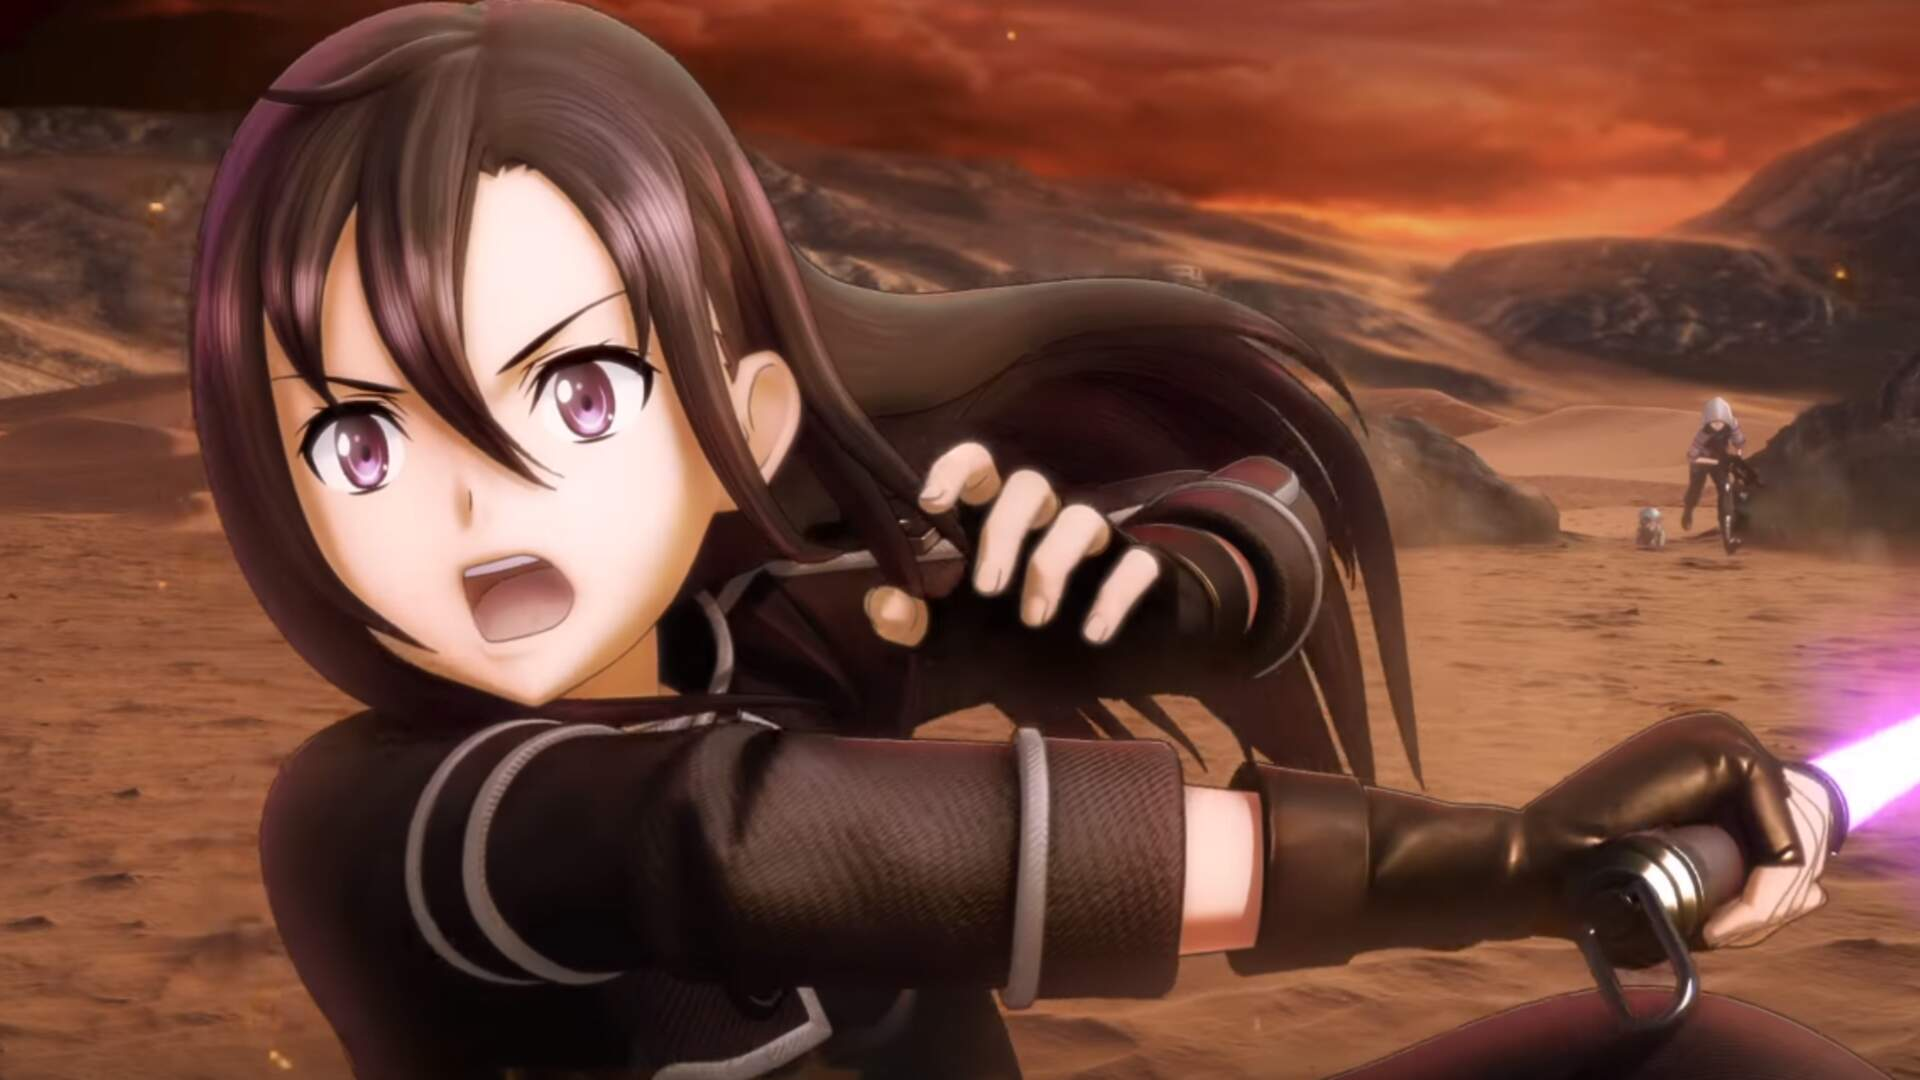 Sword Art Online: Fatal Bullet Brings Some Much Needed Anime Action to the Xbox One